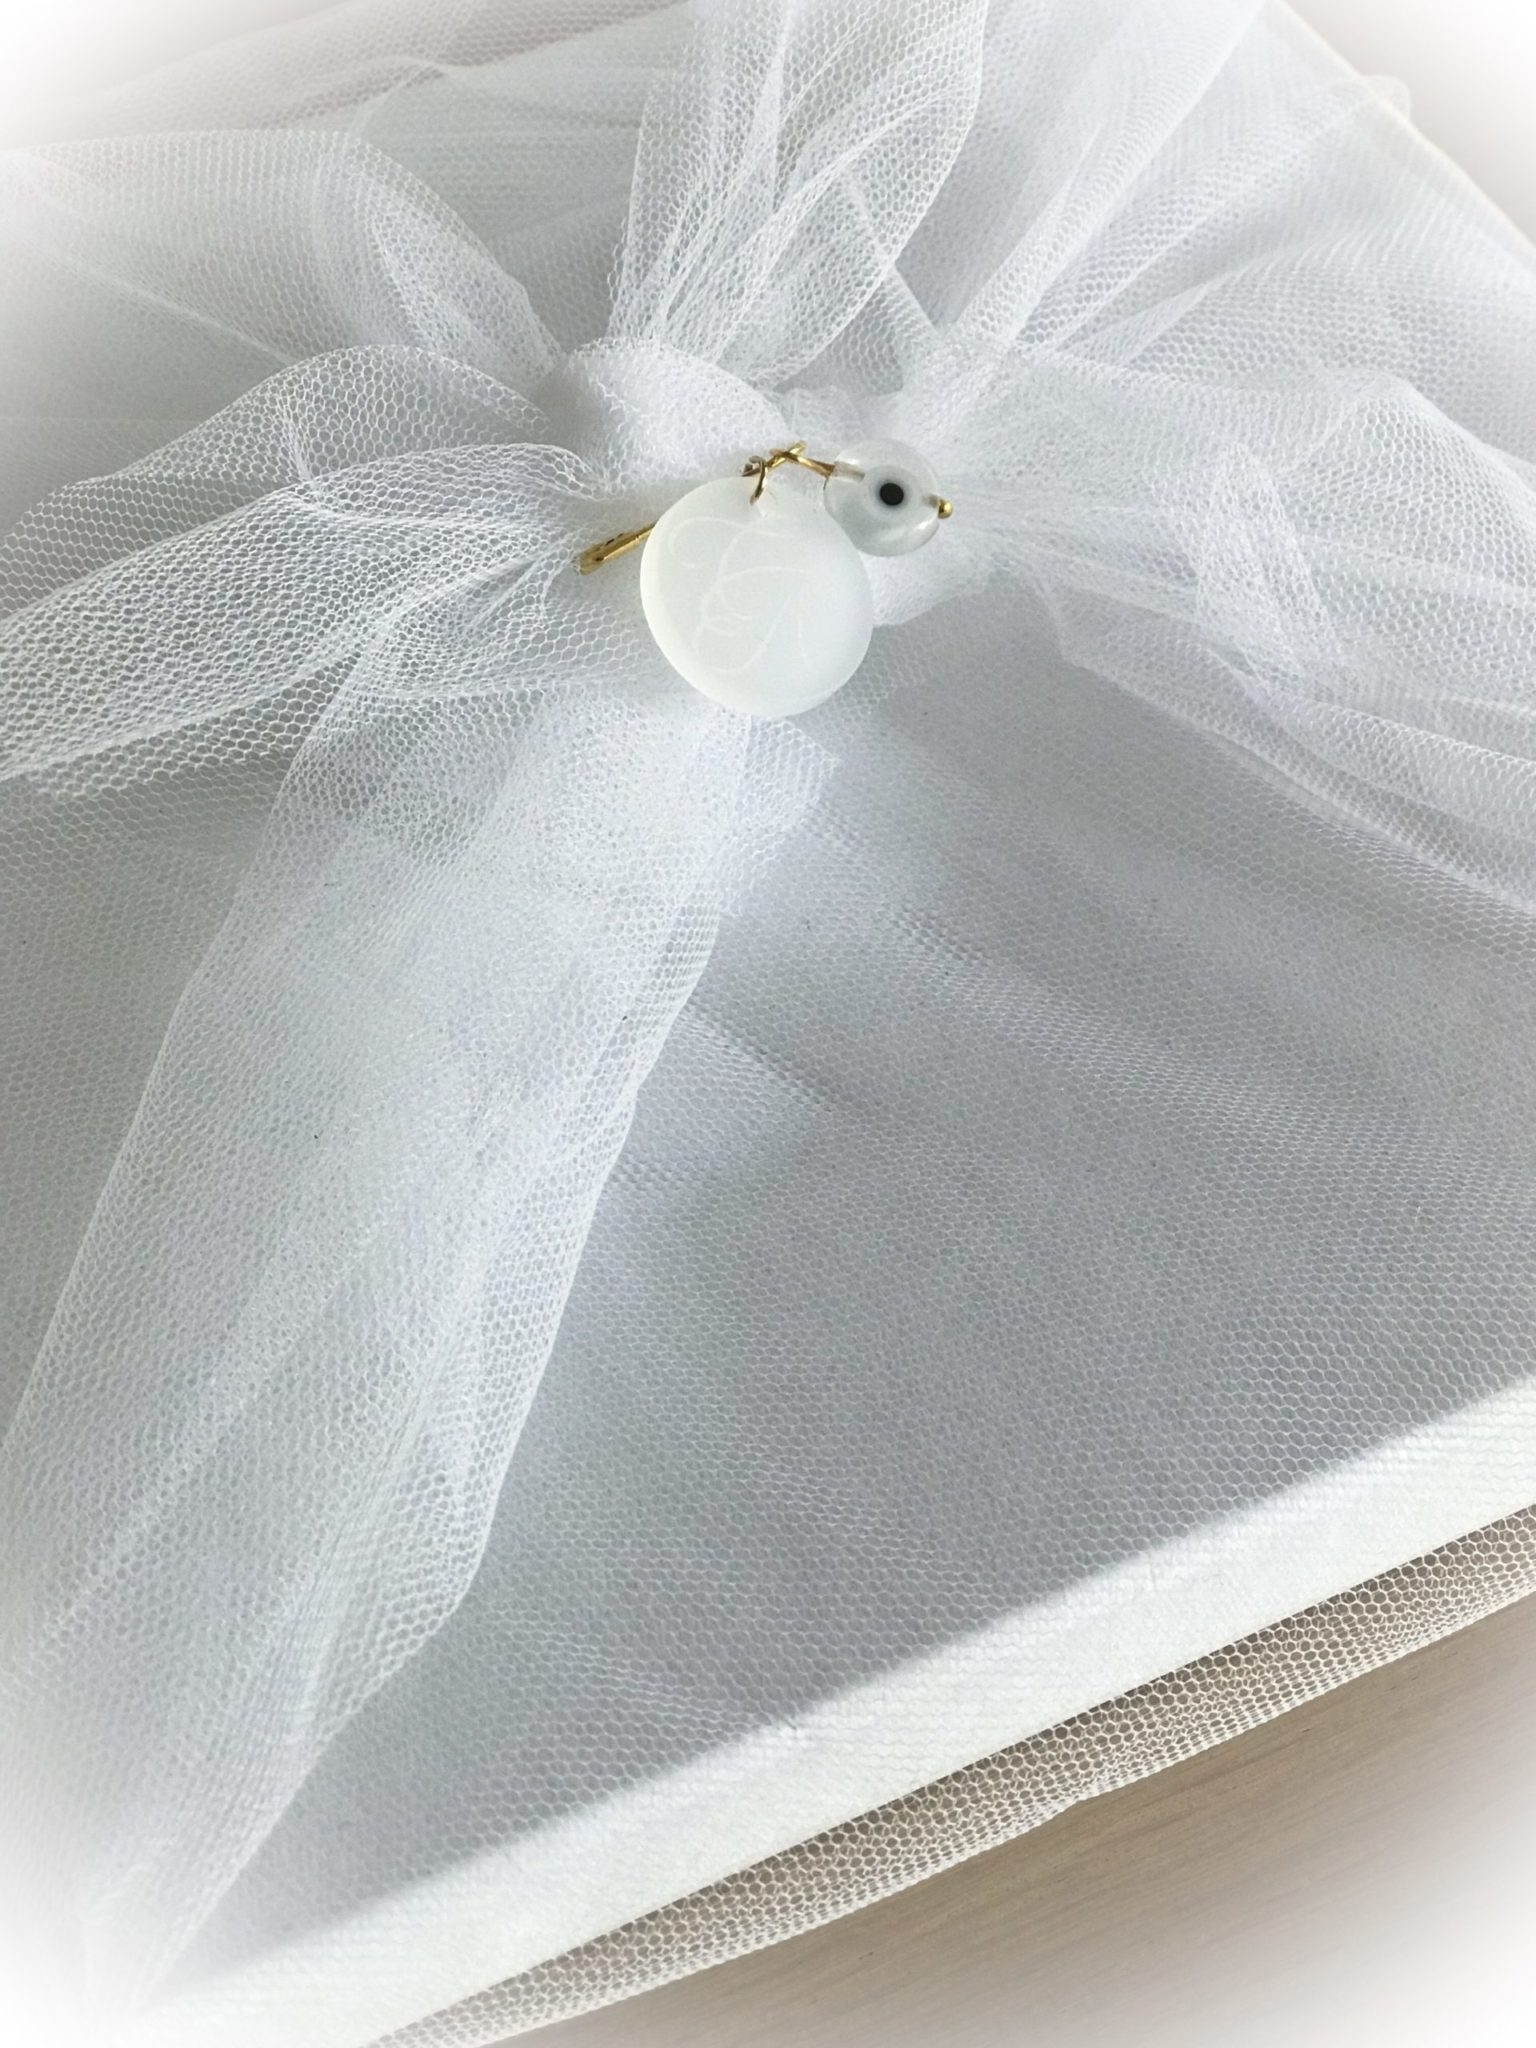 Transparency-wedding invitation-detail